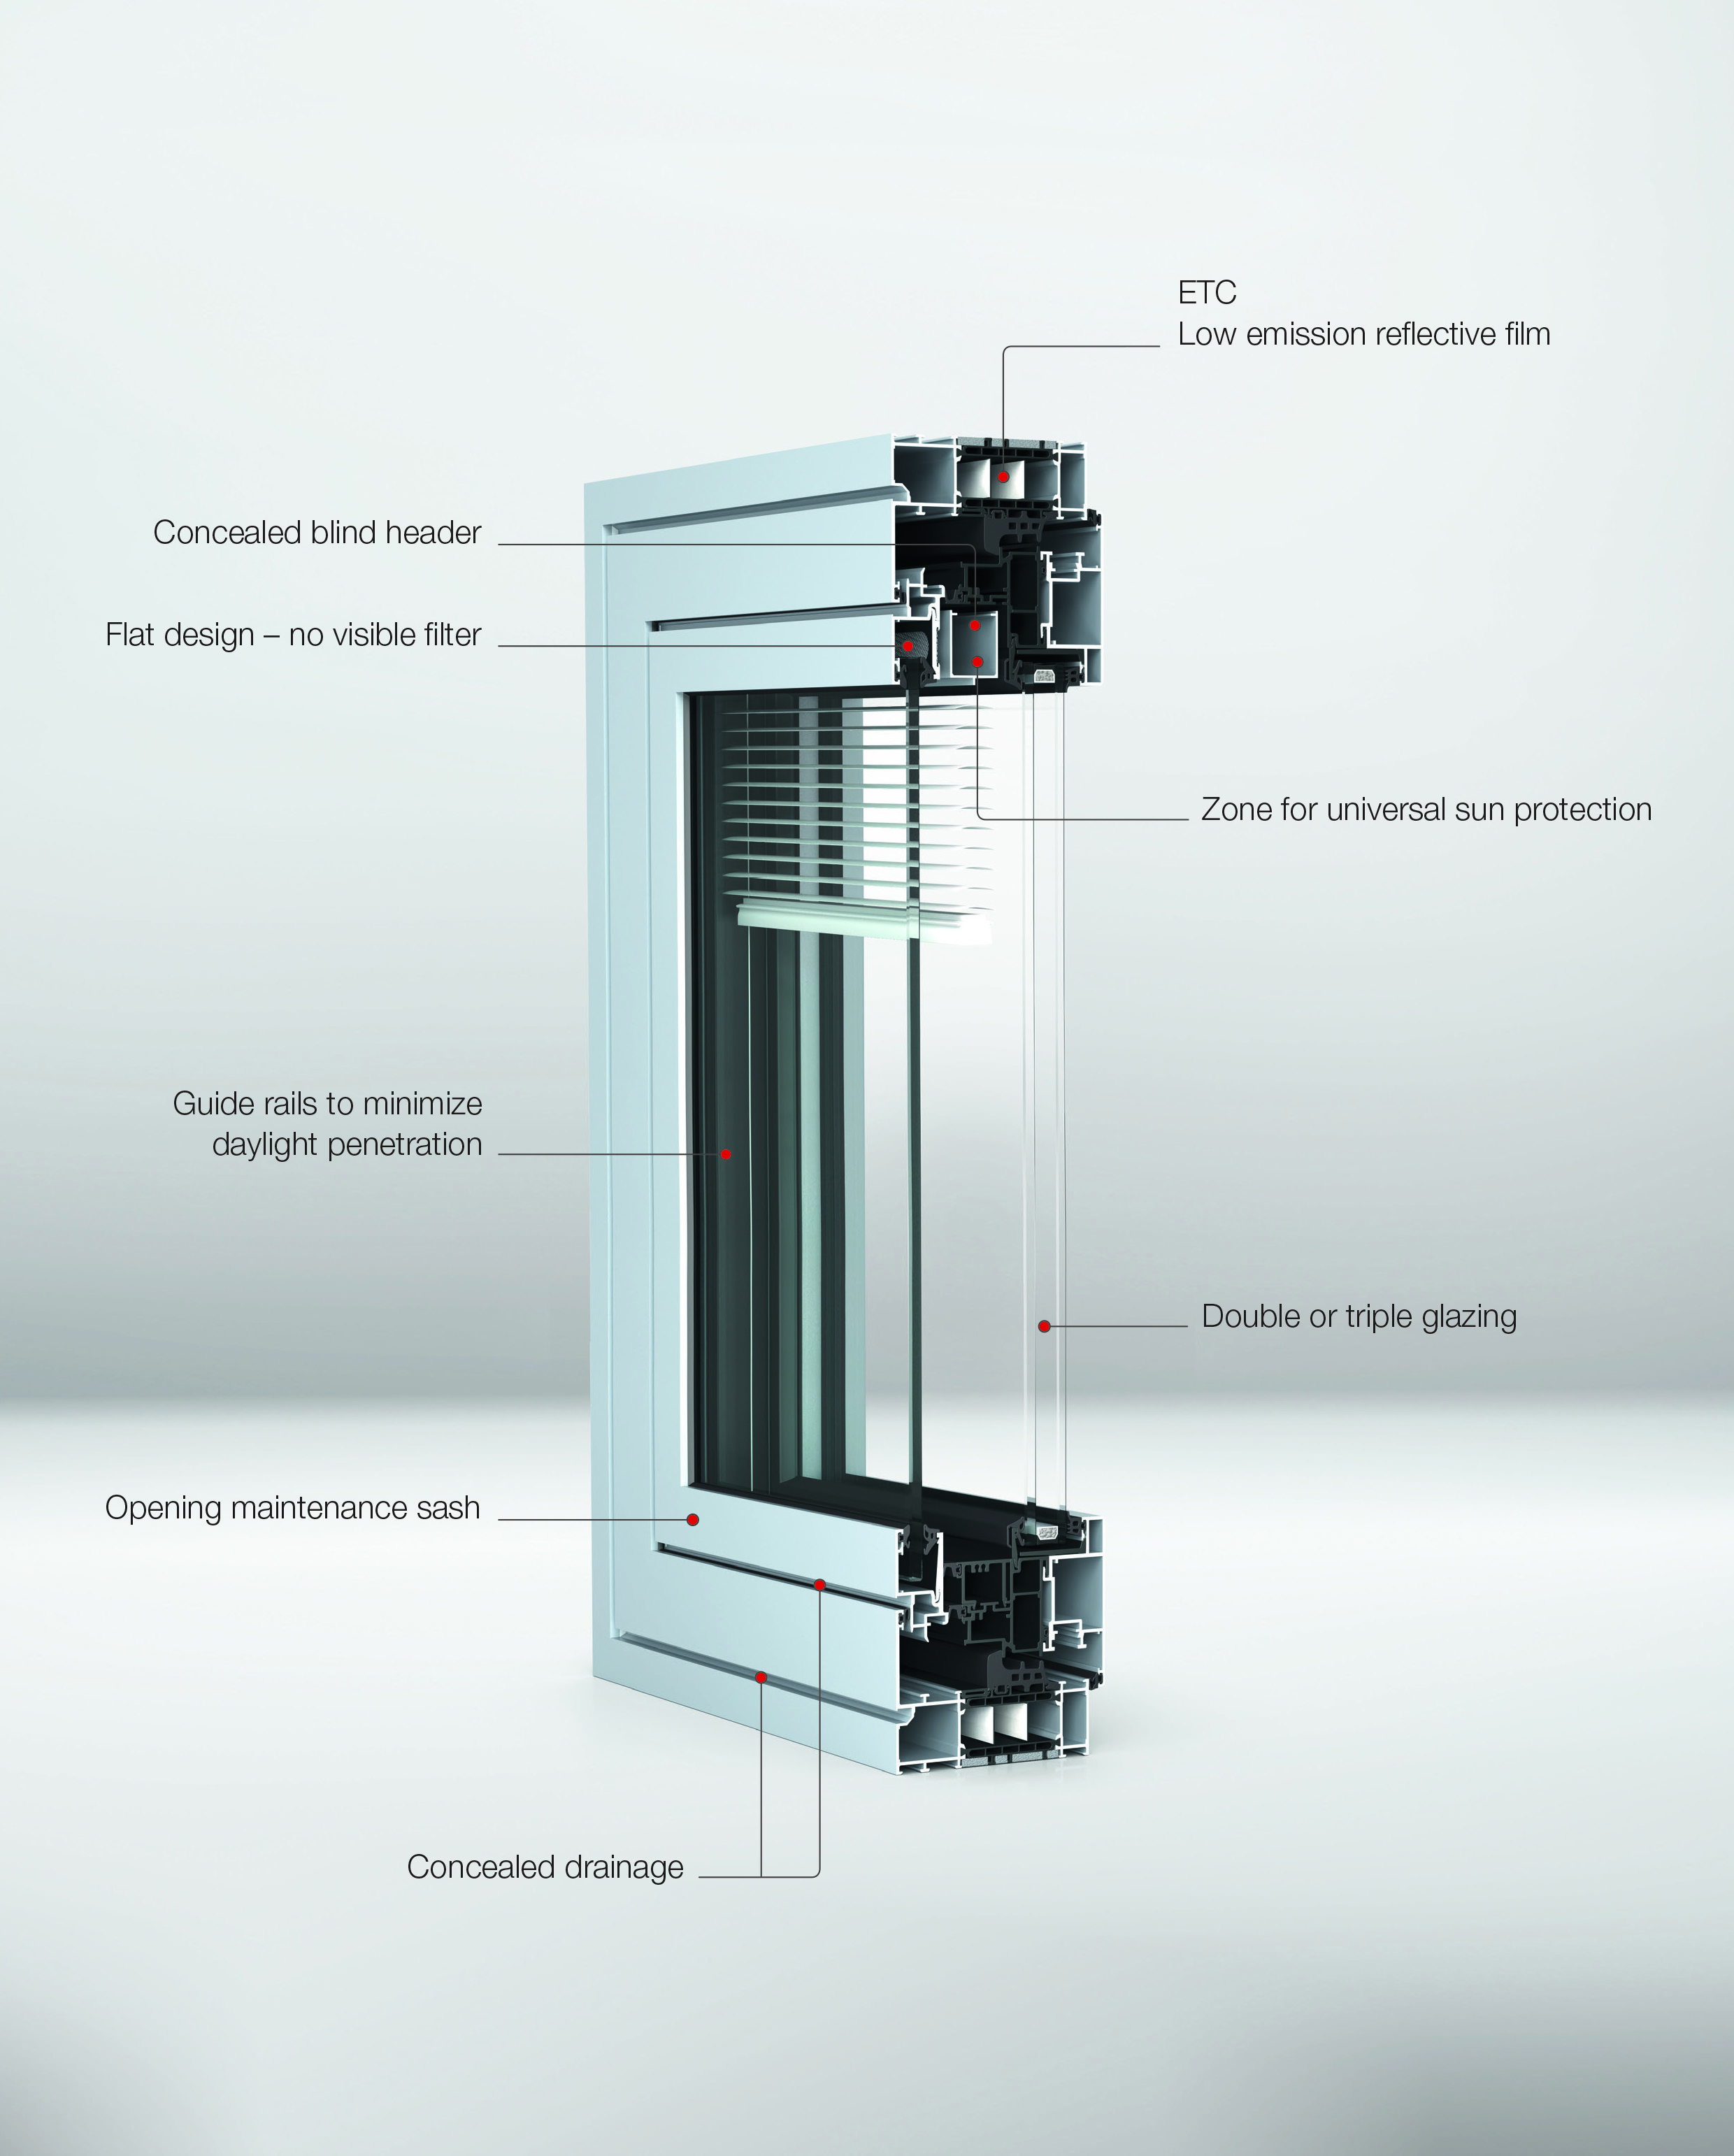 WICLINE 115 AFS Composite Window 3D cut-through model with features & benefits